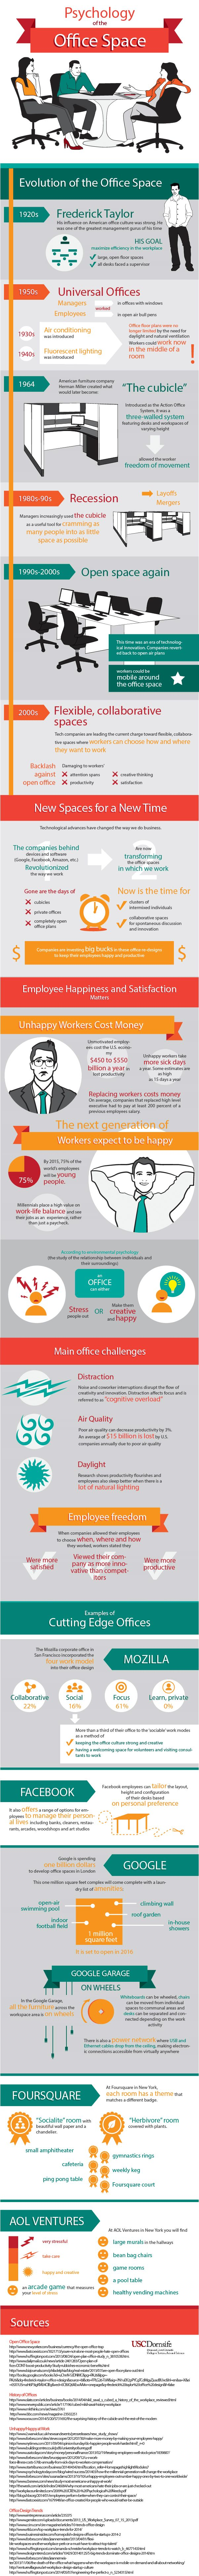 "Office design trends come in and out of fashion quicker than one can say ""treadmill desk"", but there's a good reason why managers are always obsessing about ways to improve their work spaces; it turns out that an office space can have a huge psychological impact on employees.  When creating an office layout, lighting, ventilation, and"